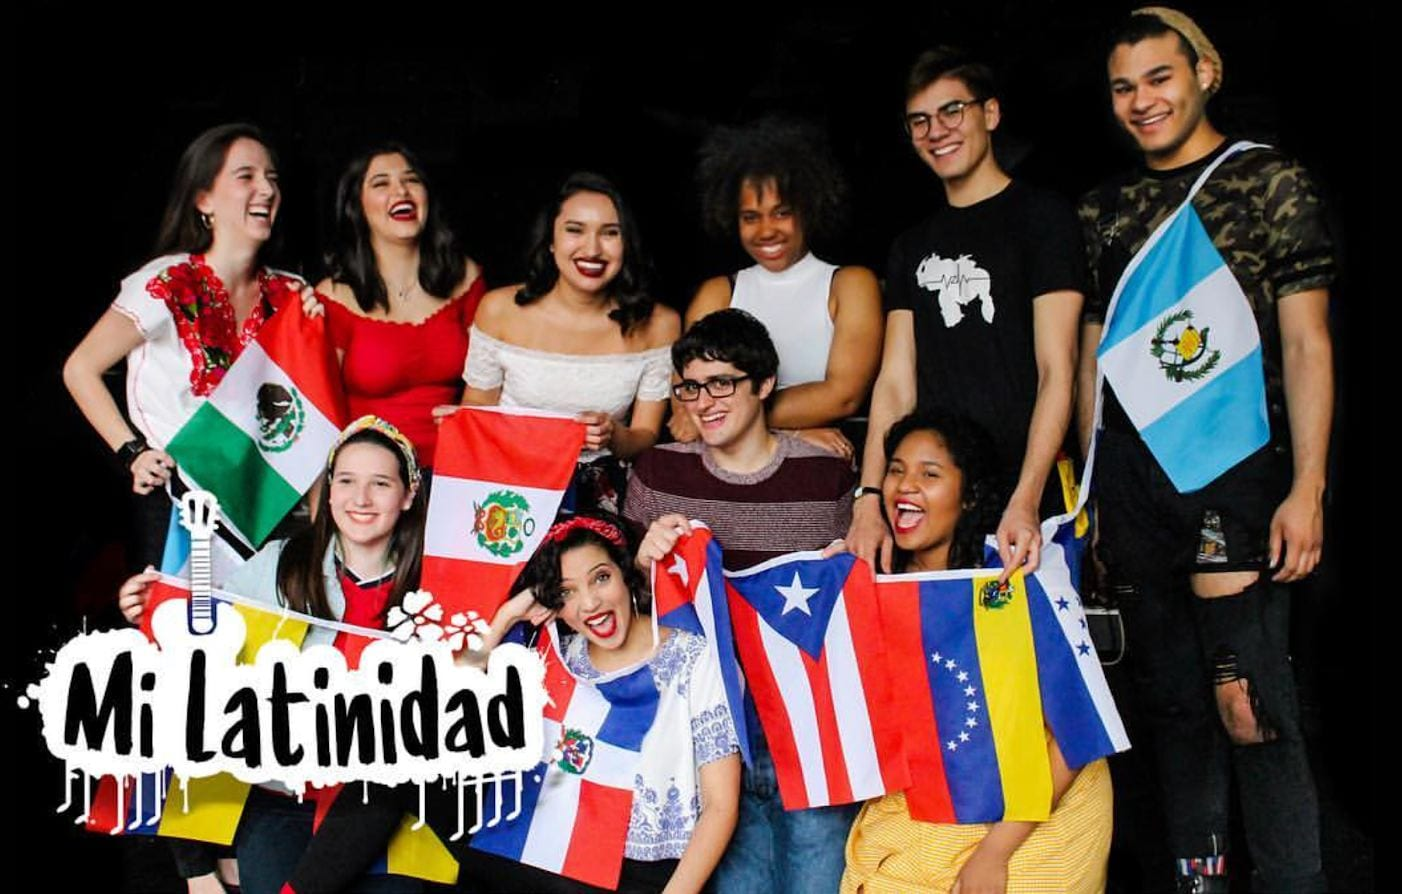 The 2018 Cast of Mi Latinidad Photograph by Nic Mains